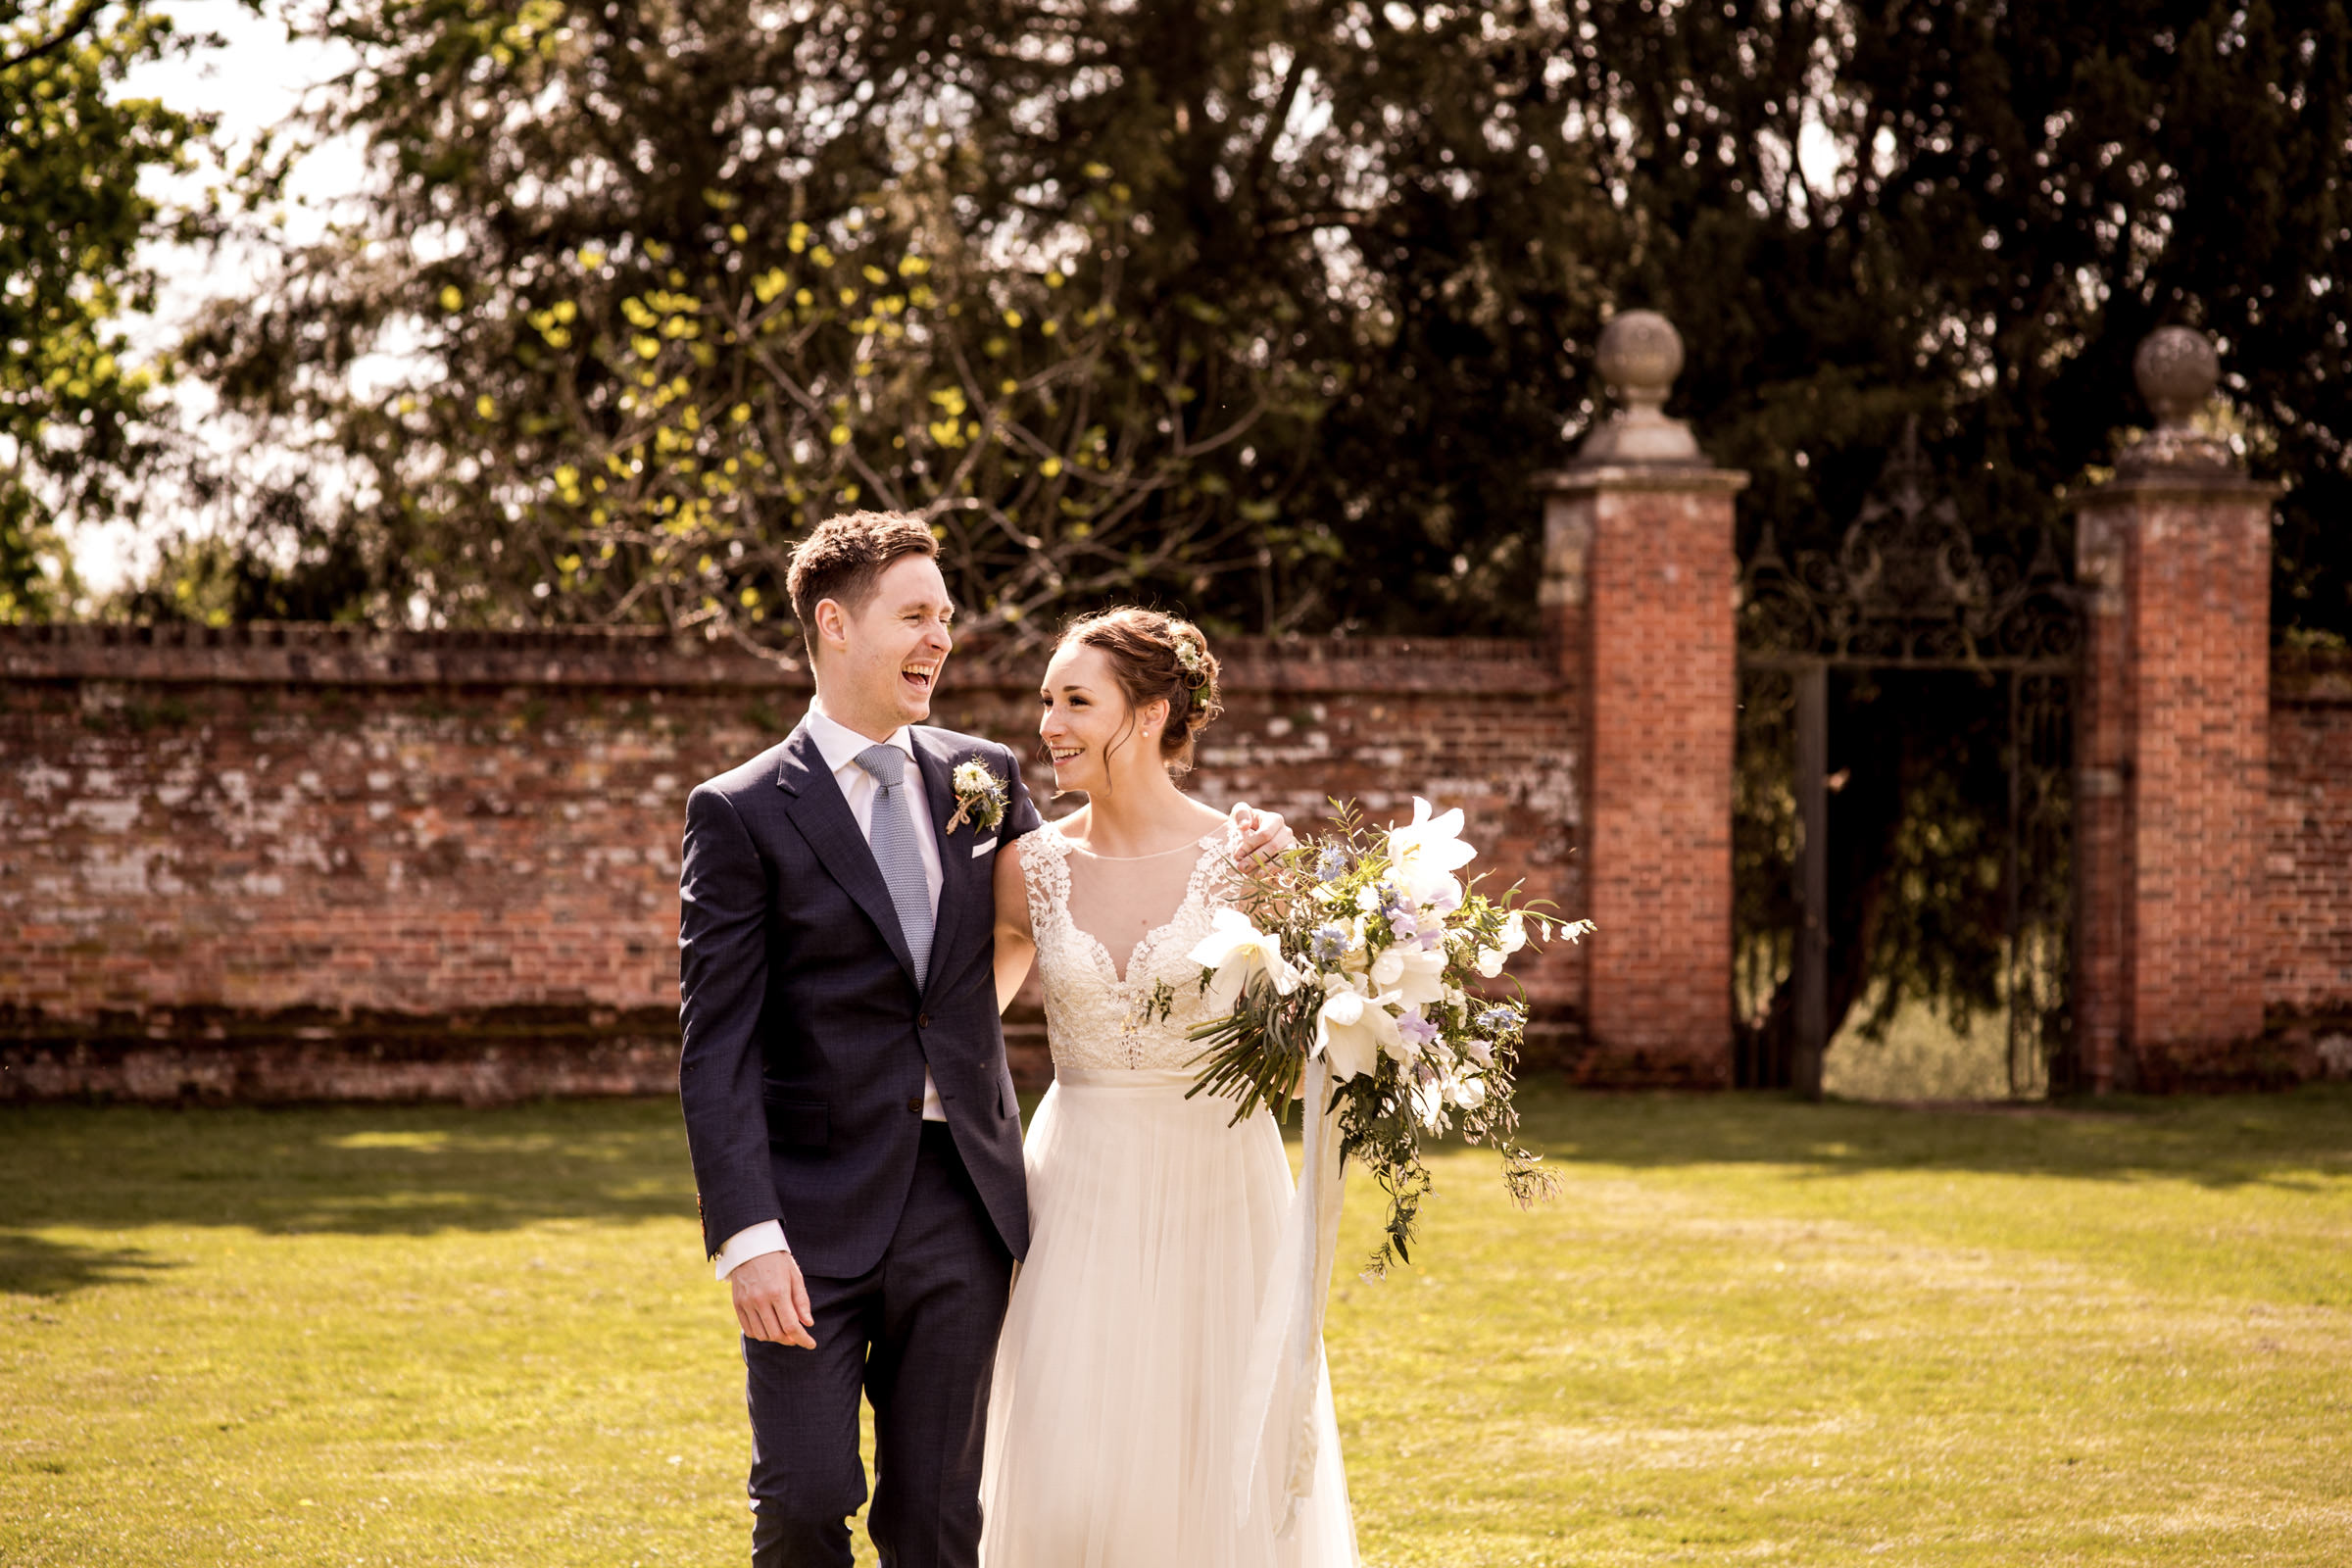 Ufton Court Weddings_014.jpg